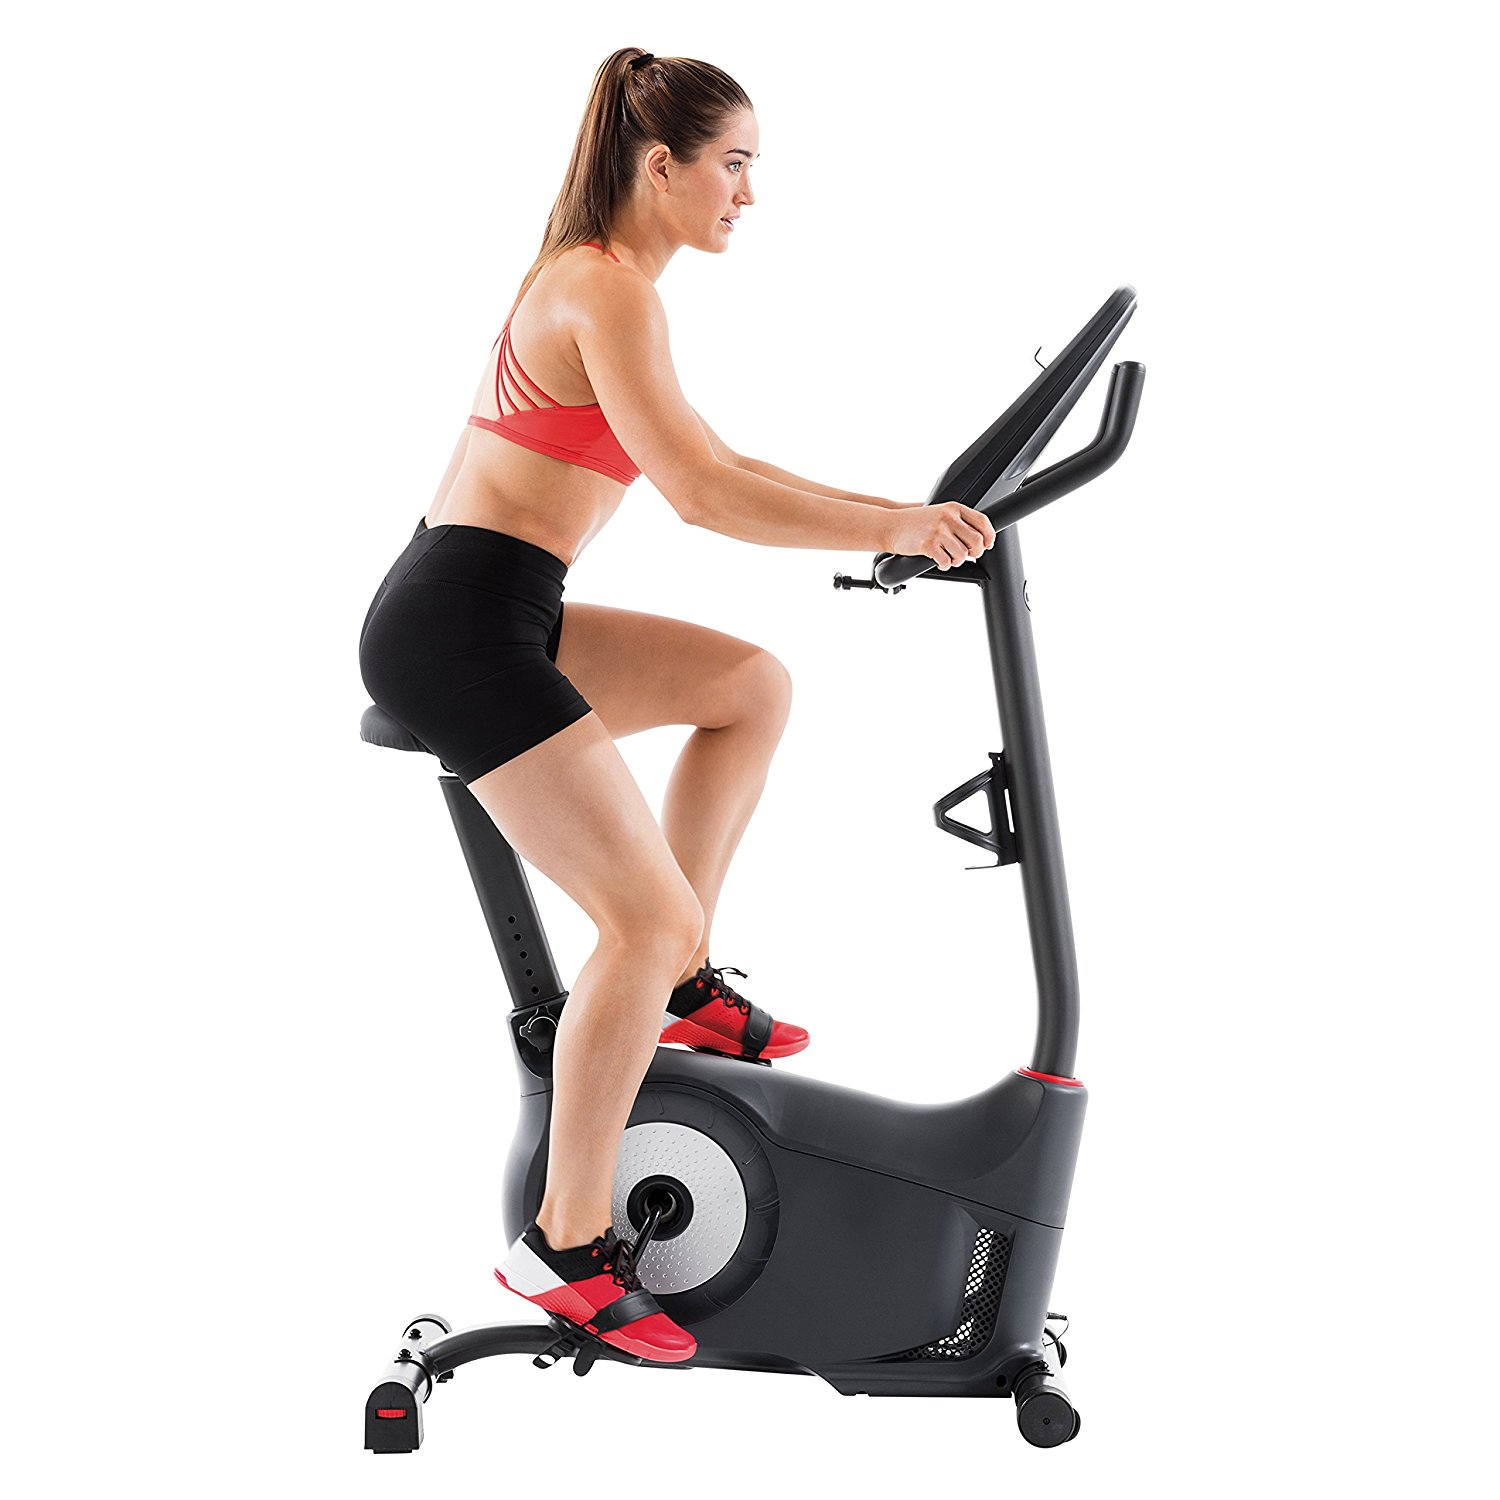 Schwinn MY16 130 recumbent bike review